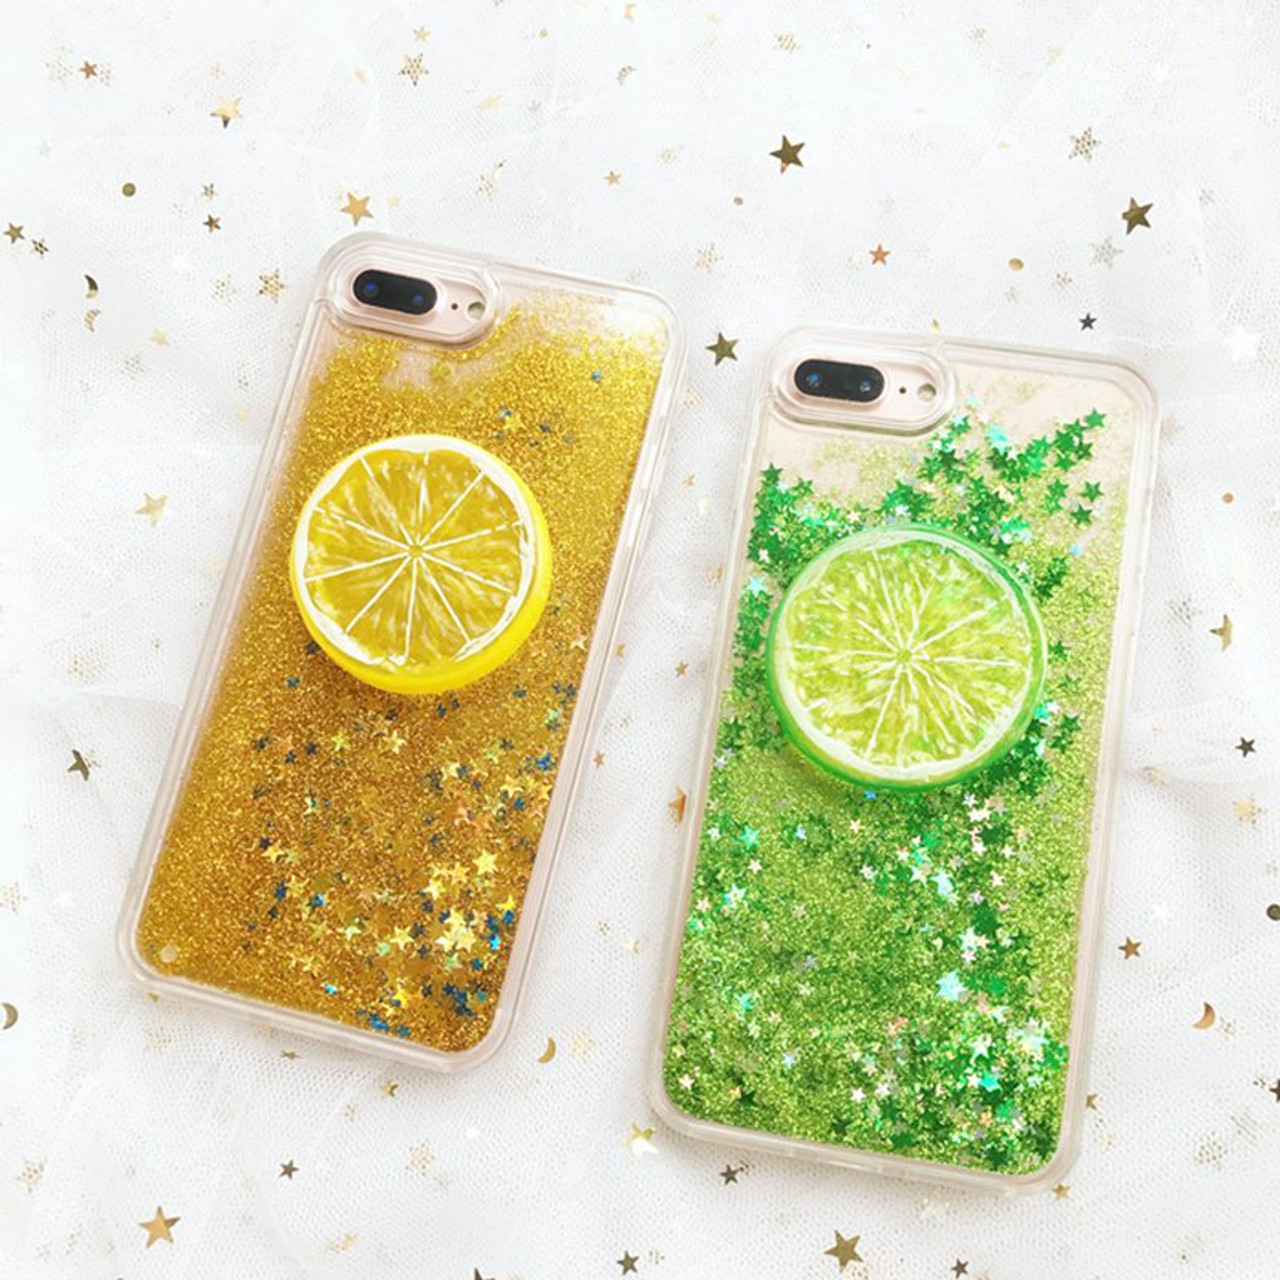 100% authentic f11a7 35583 Summer 3D Lemon DIY Dynamic Liquid Quicksand Stars Glitter Phone Case For  iphone 7Plus 6 6S Colorful Bling Back Cover Capa Coque